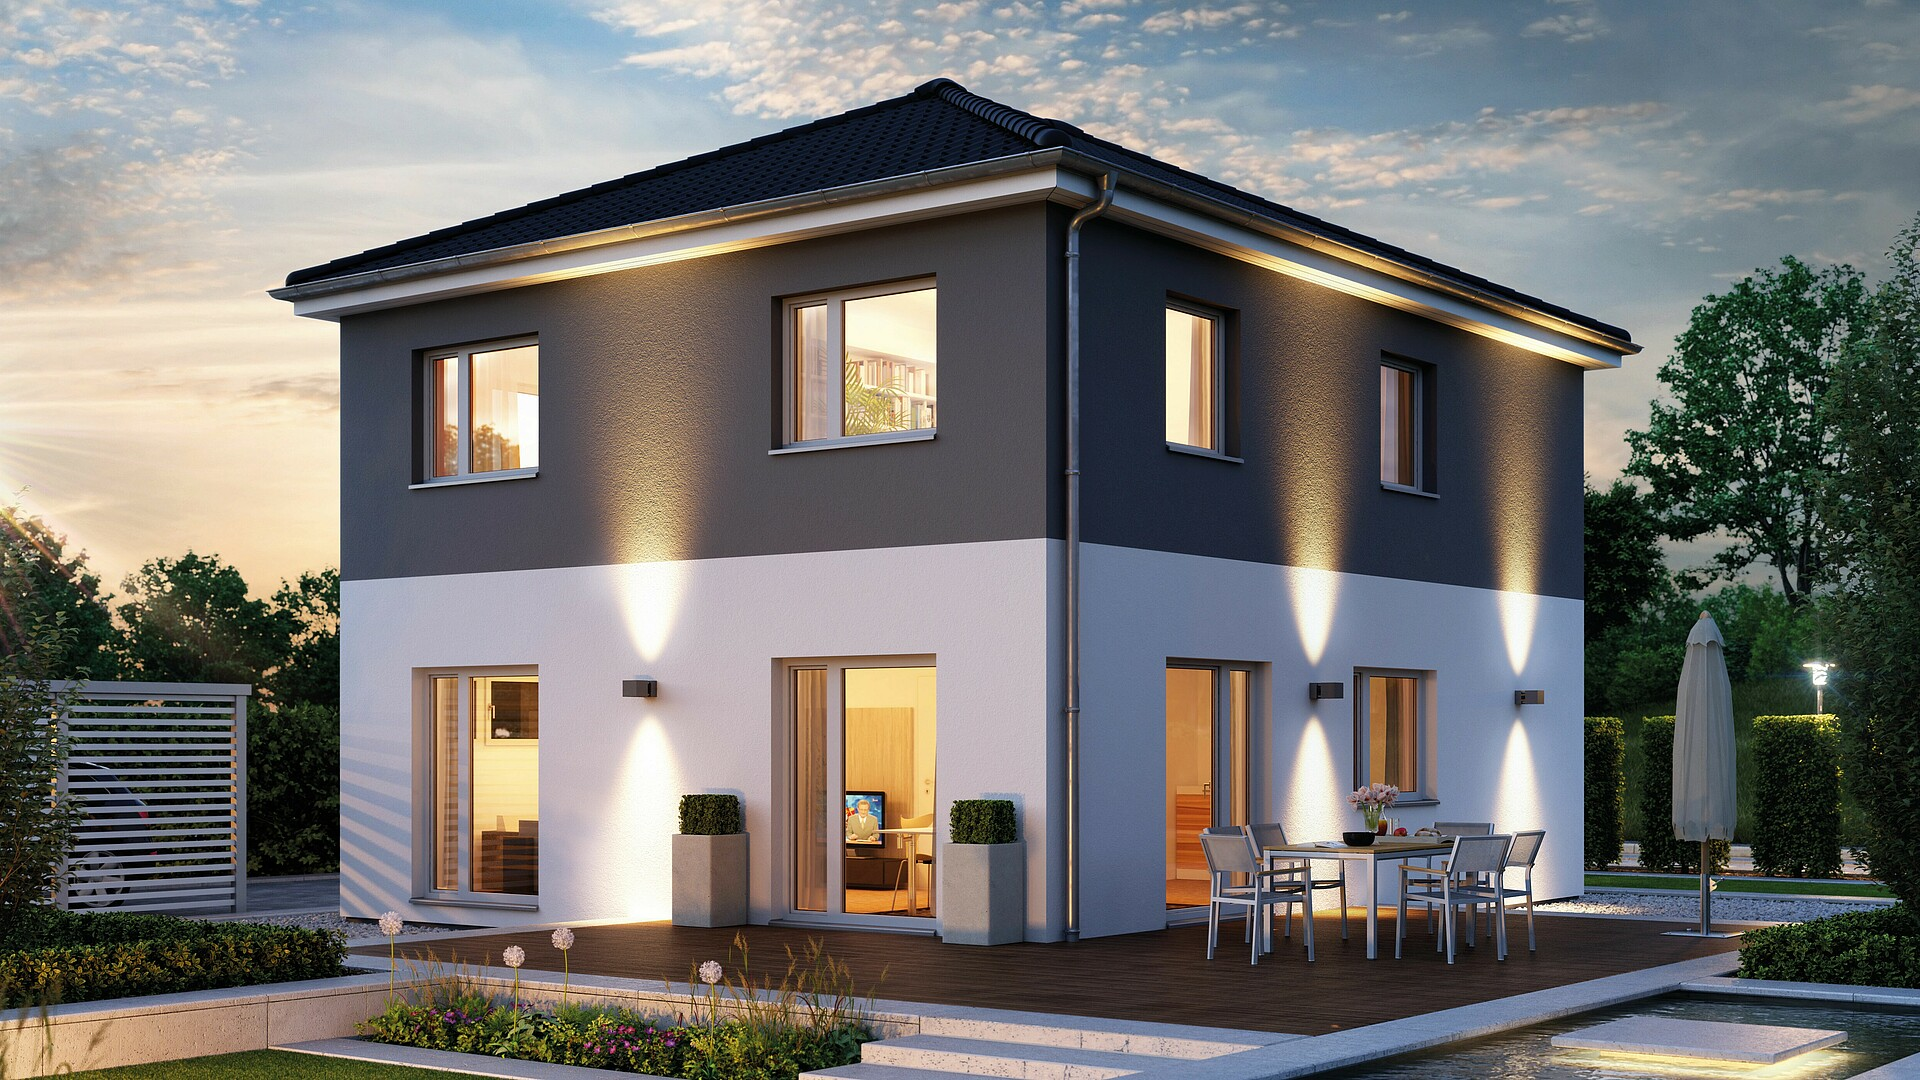 The Prefabricated Villa From Our Toscana House To Our